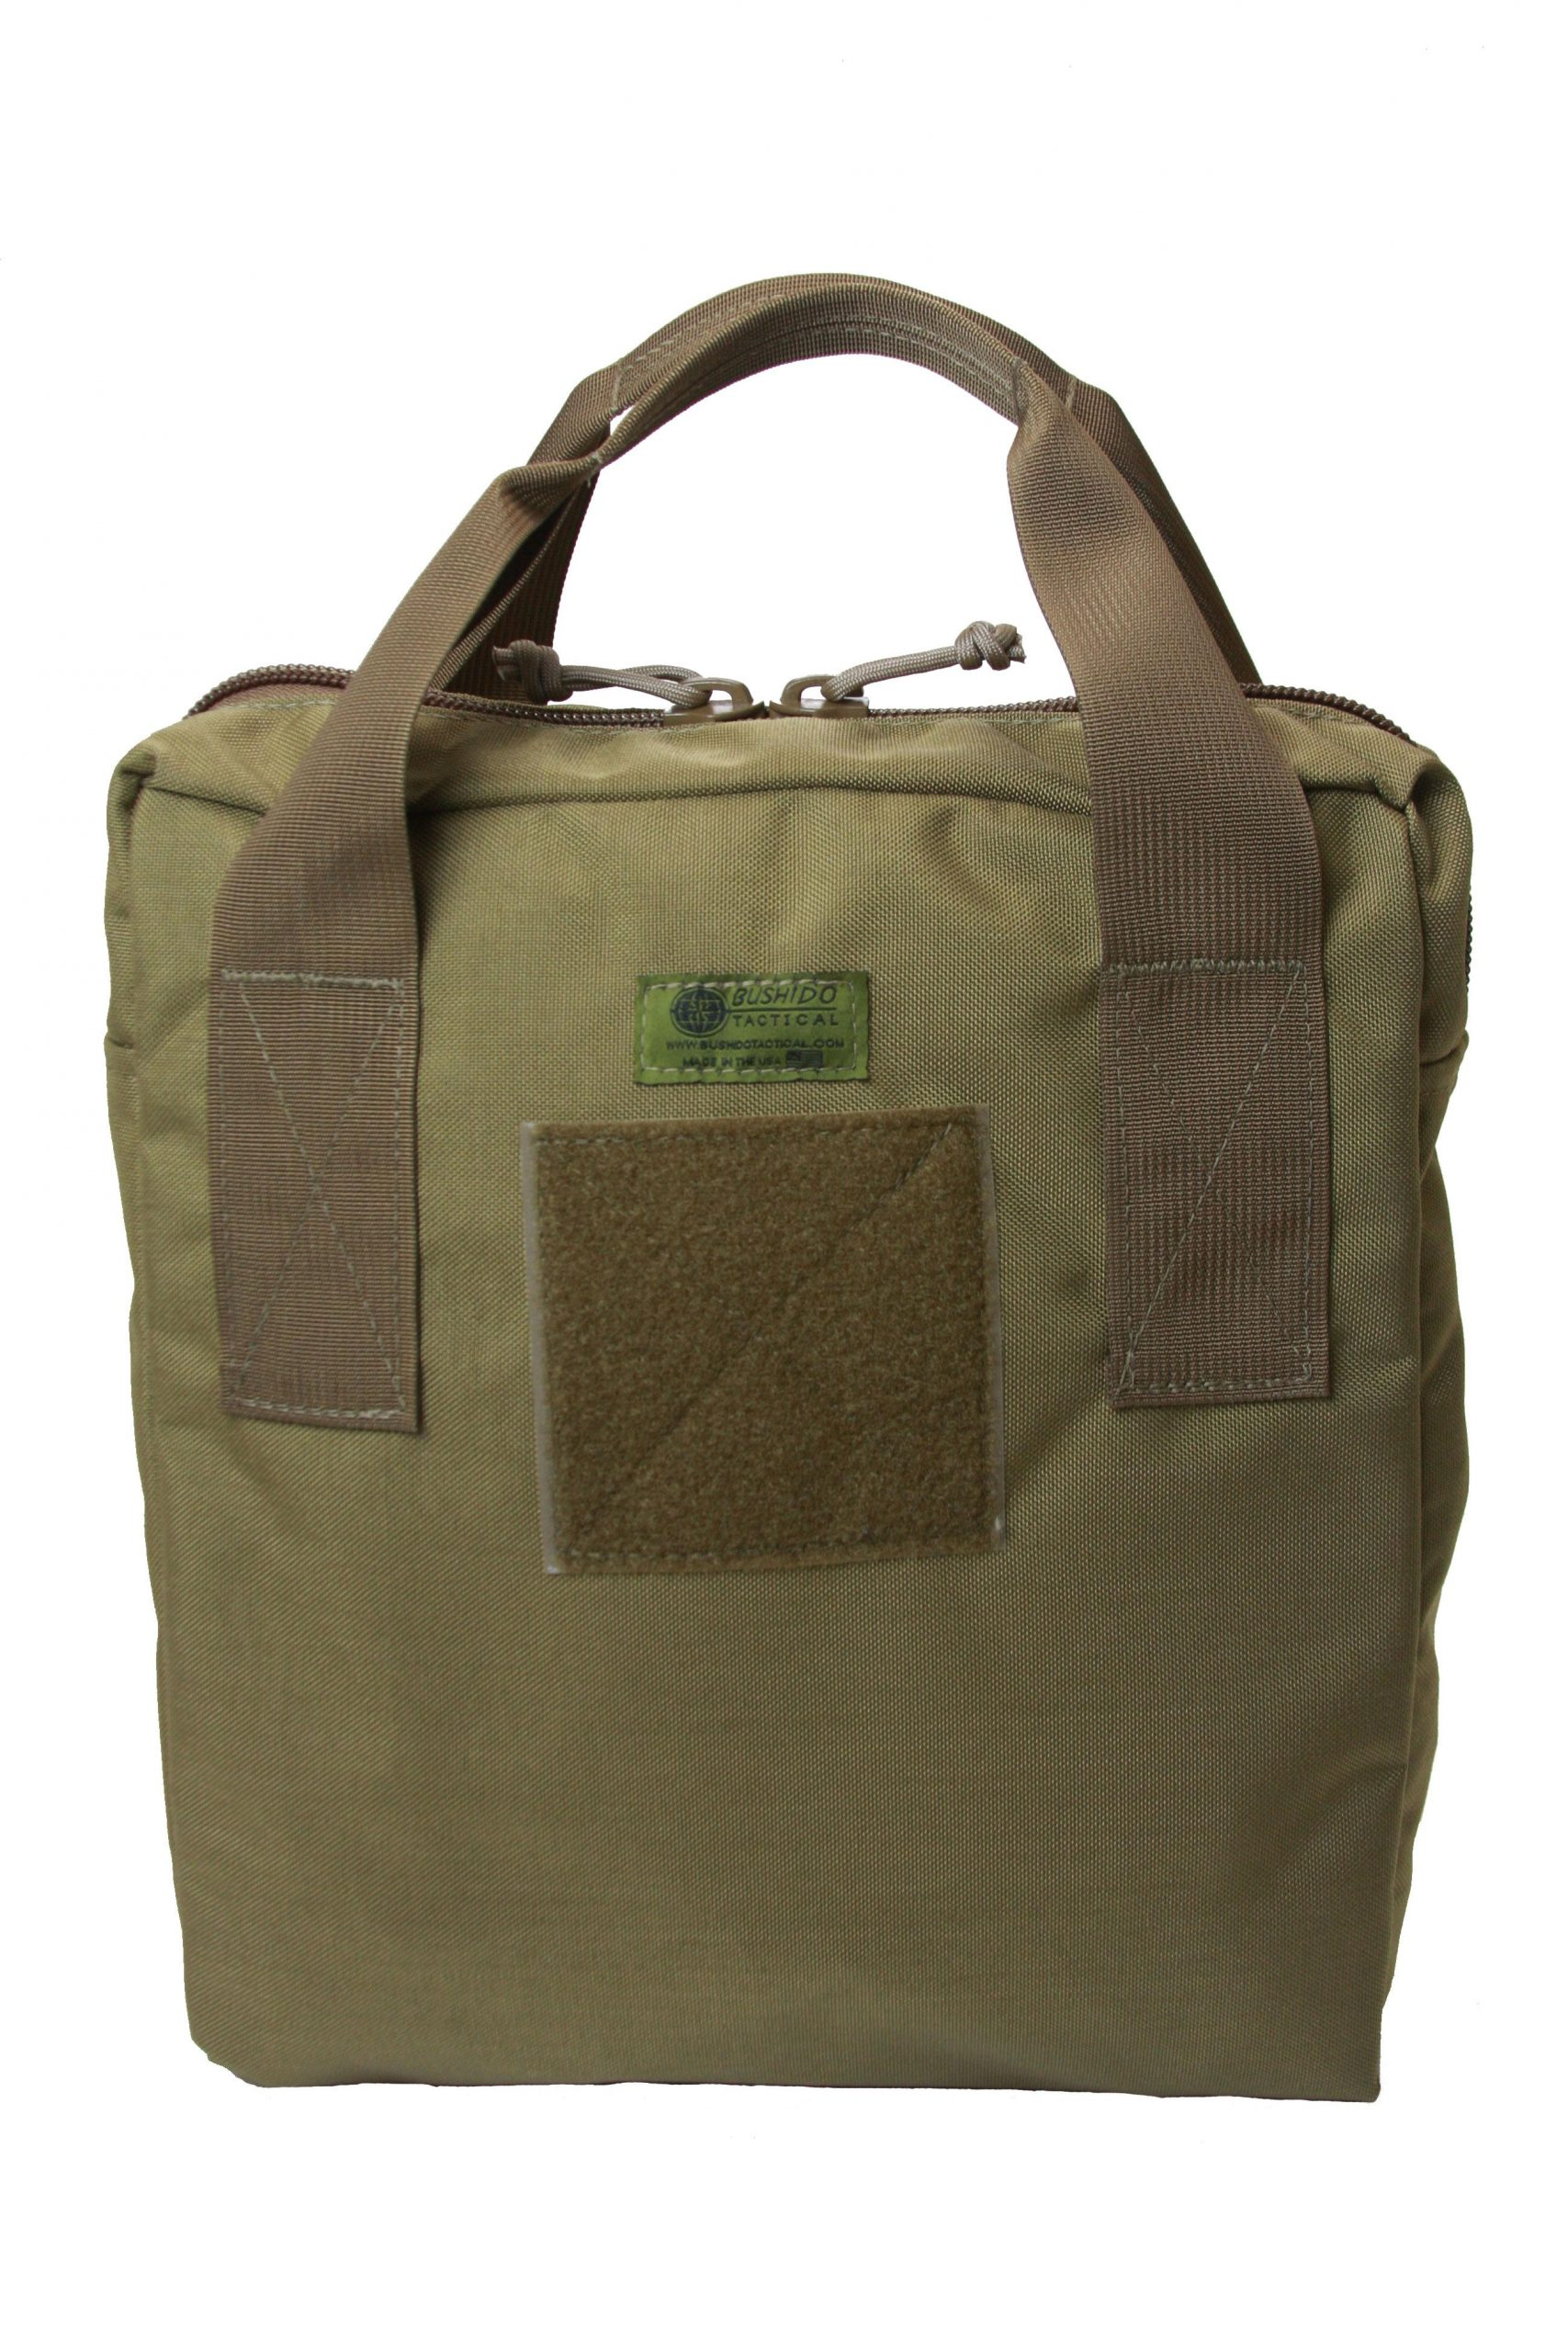 Small Utility/Grocery Bag